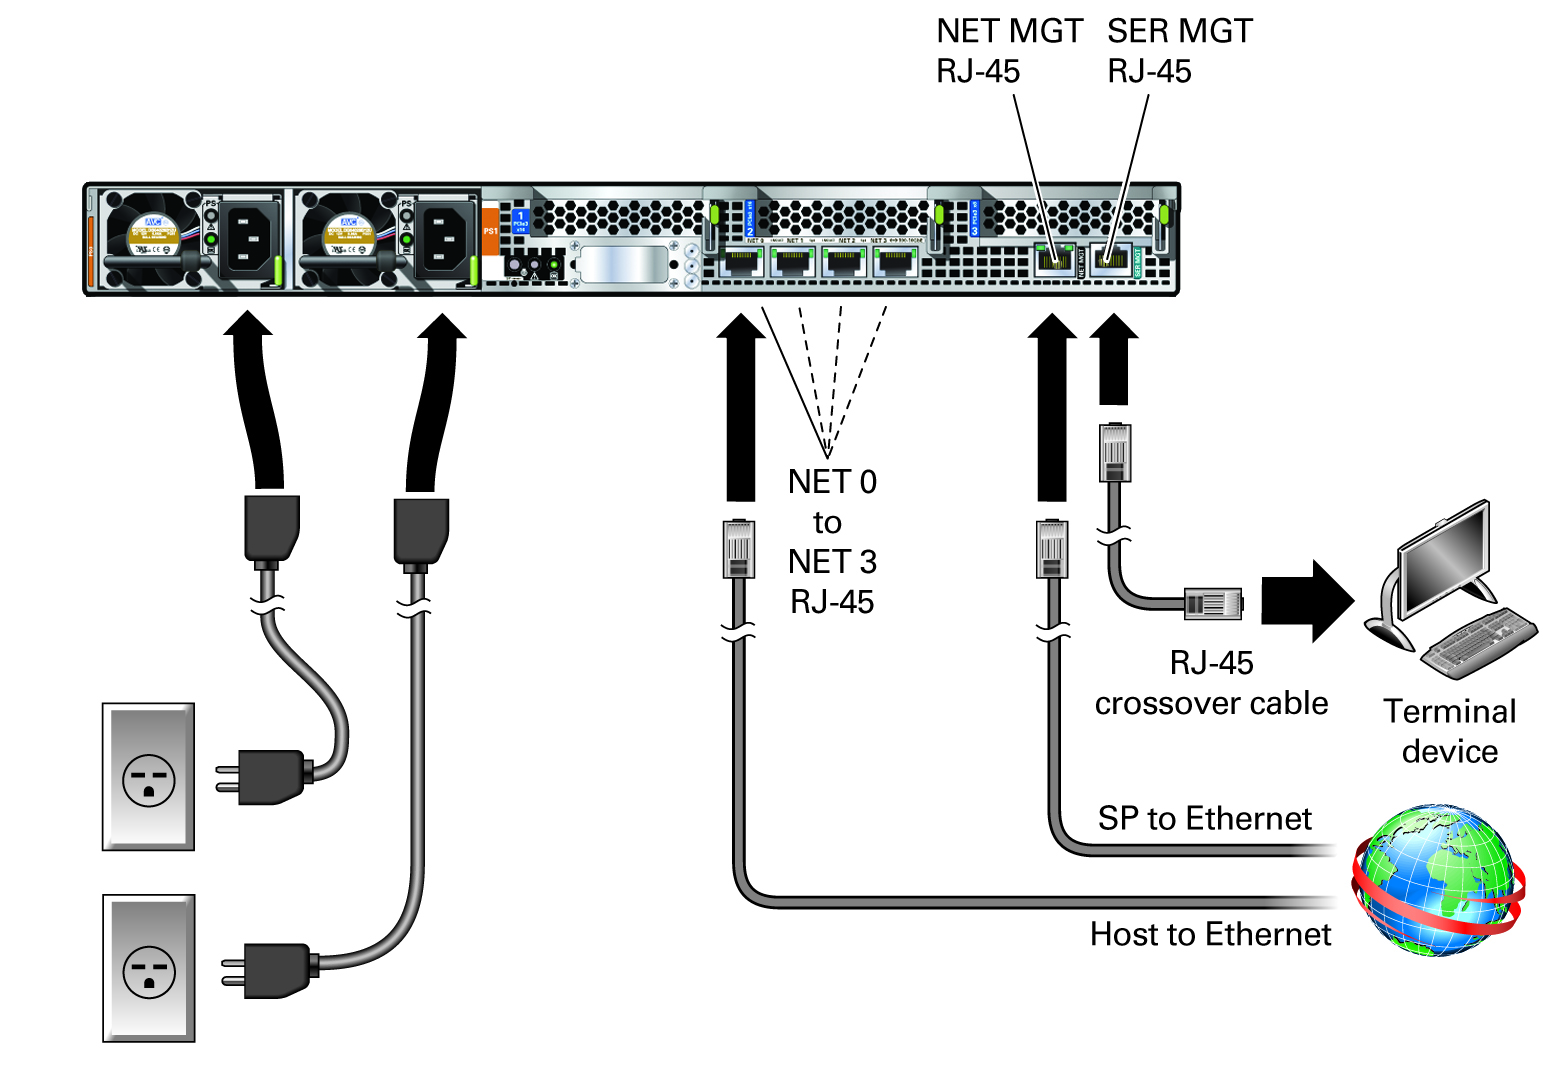 hight resolution of image image showing cables connecting to the rear of the server